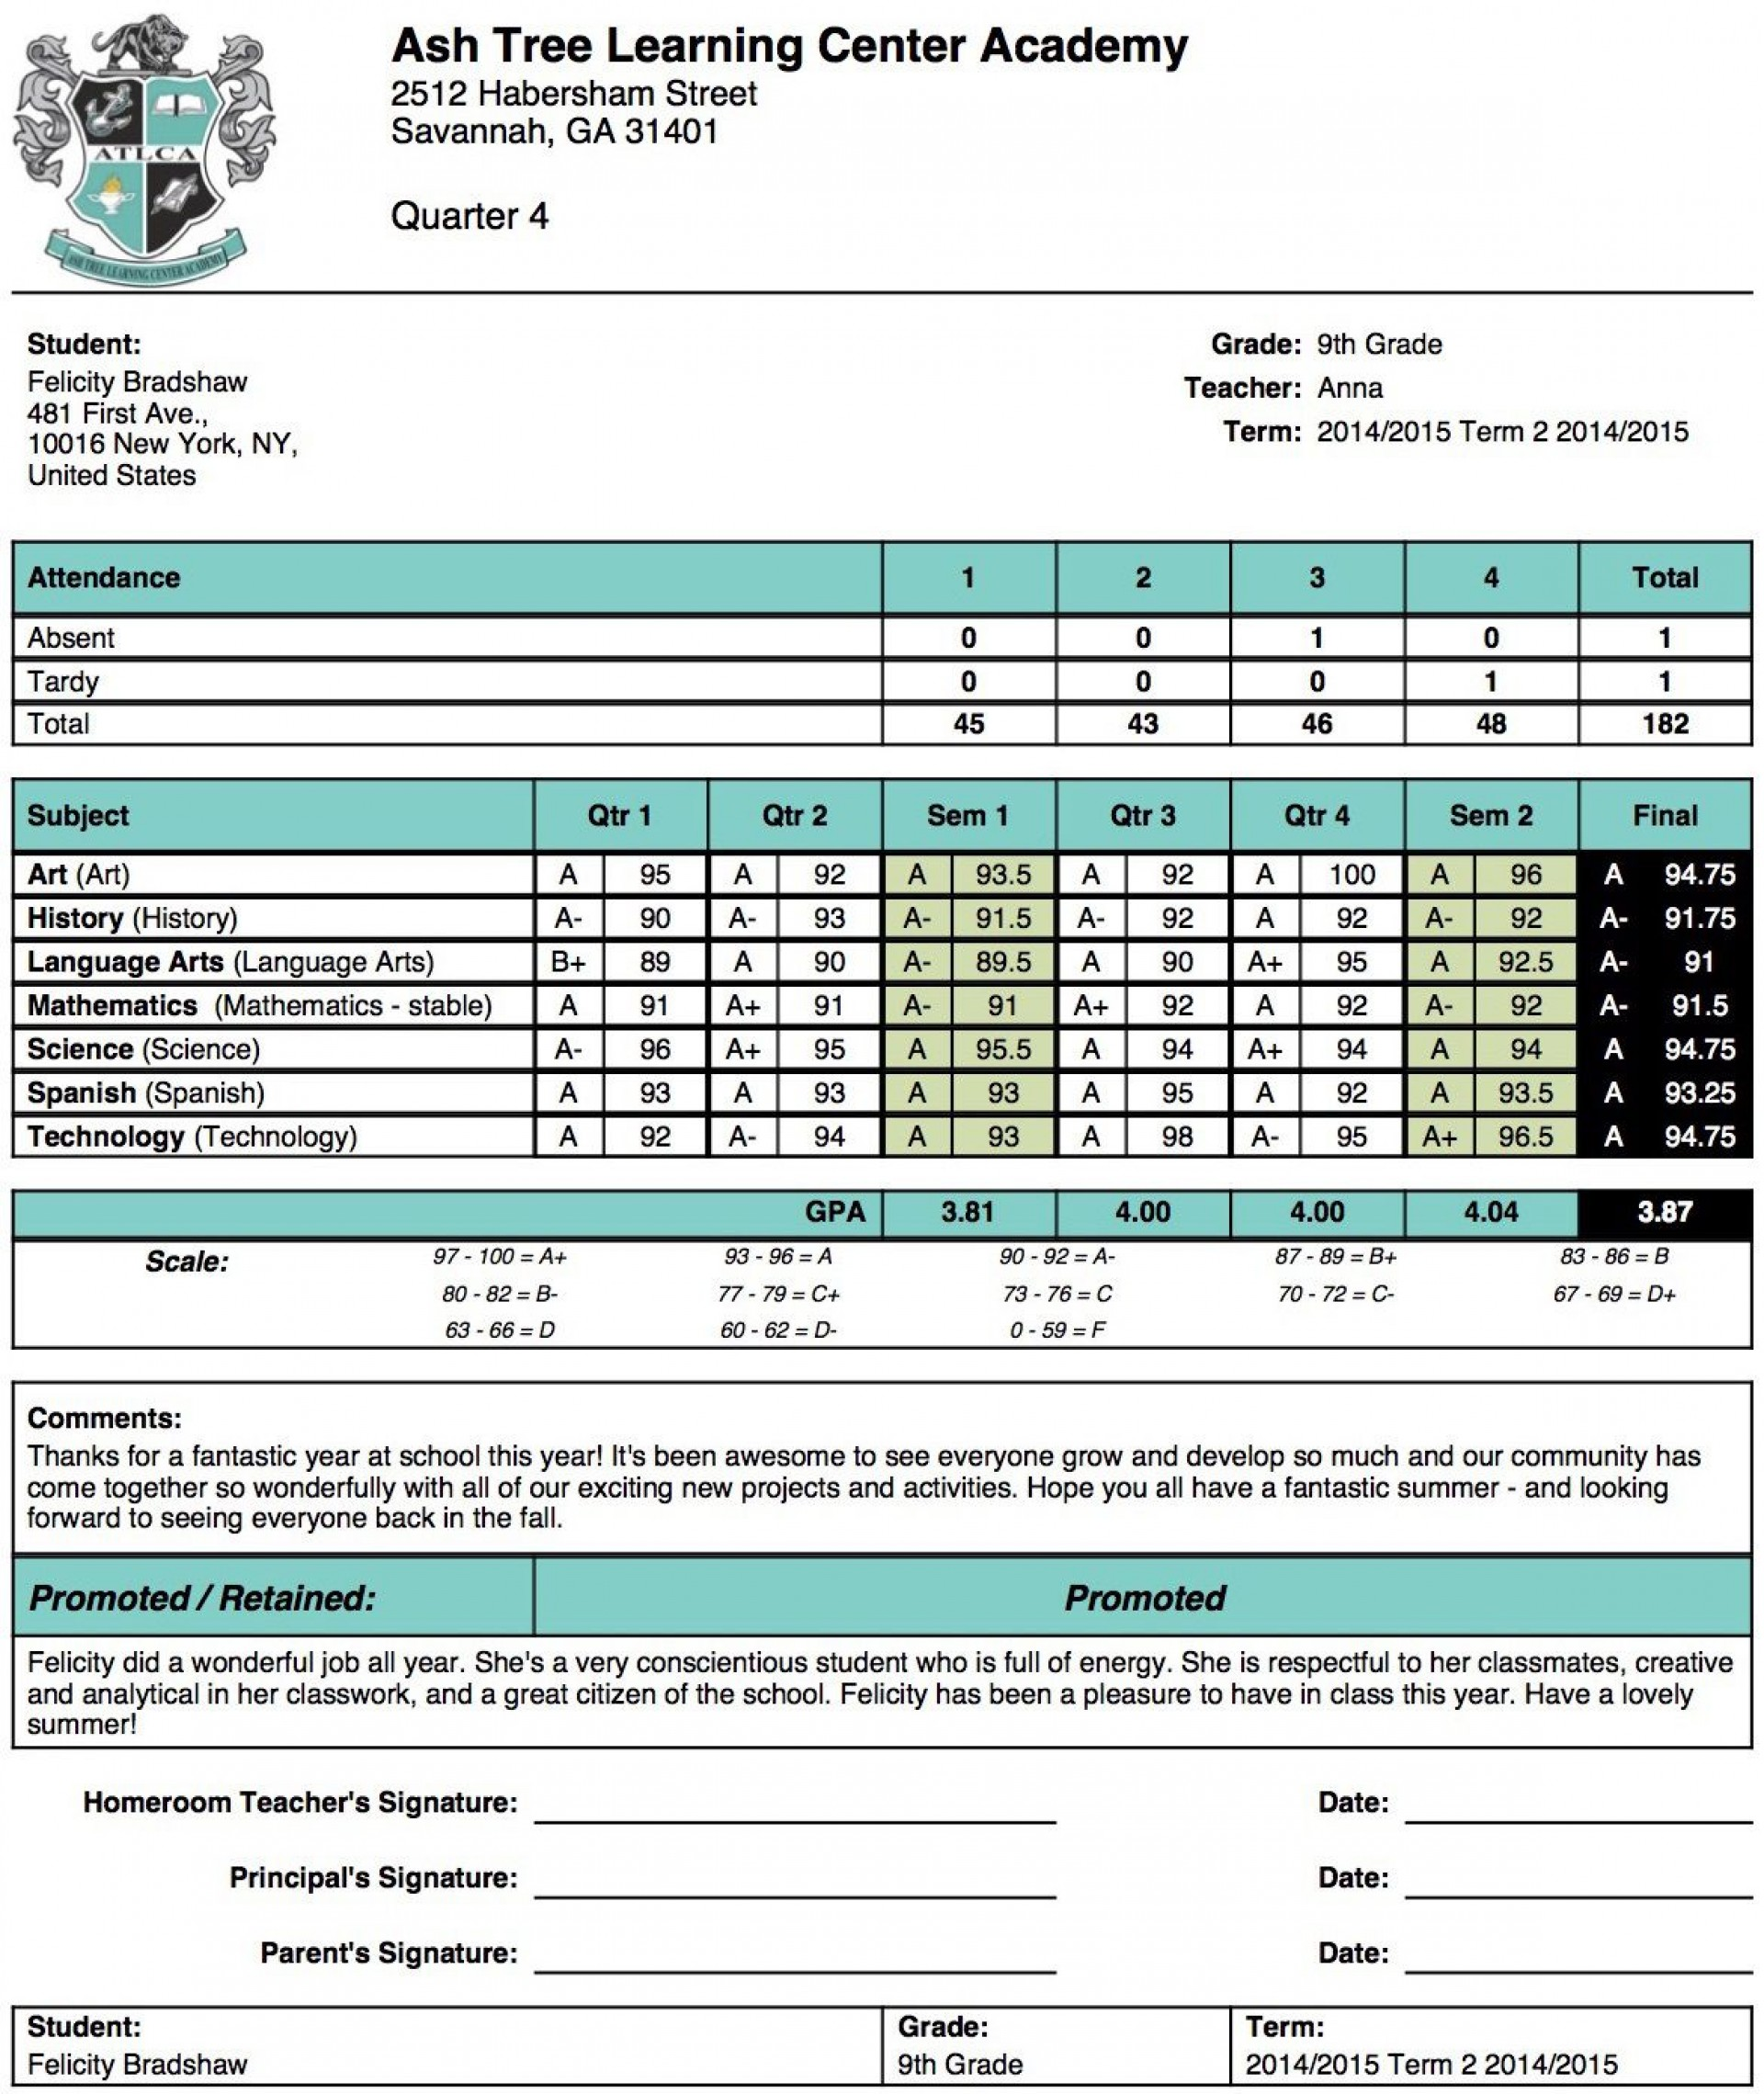 006 Awesome Middle School Report Card Template Free Inspiration 1920